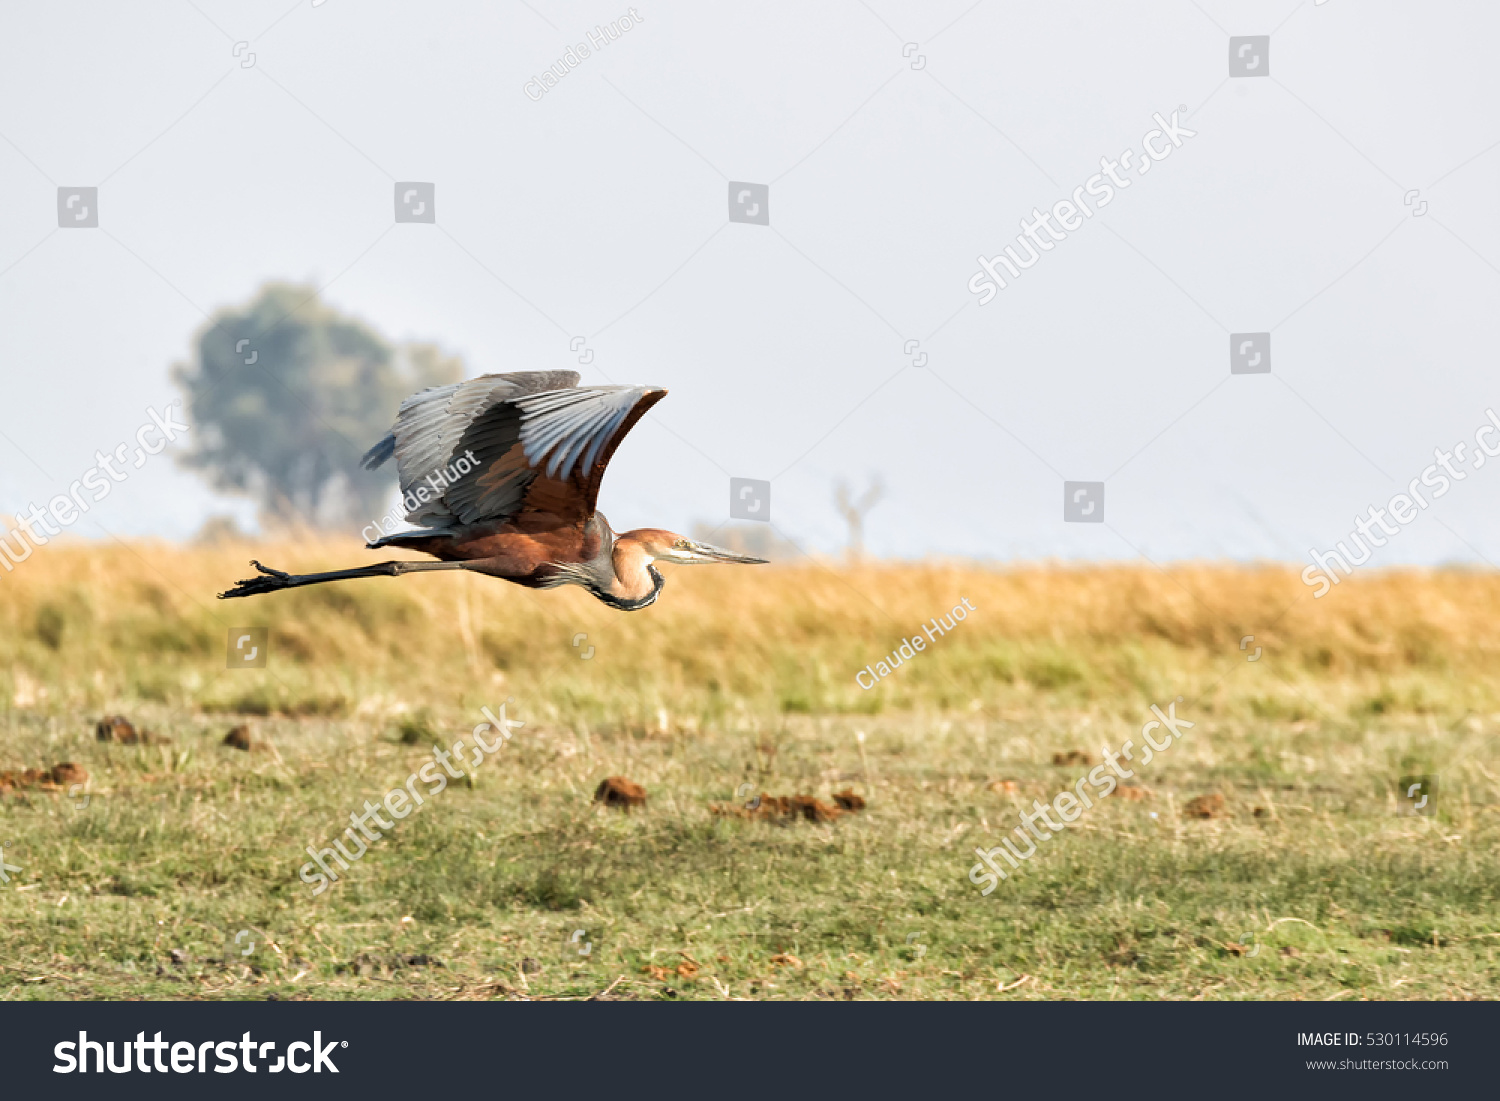 A Goliath heron (Ardea goliath) flies over the Chobe river between Namibia and Botswana. This is the world's largest heron.